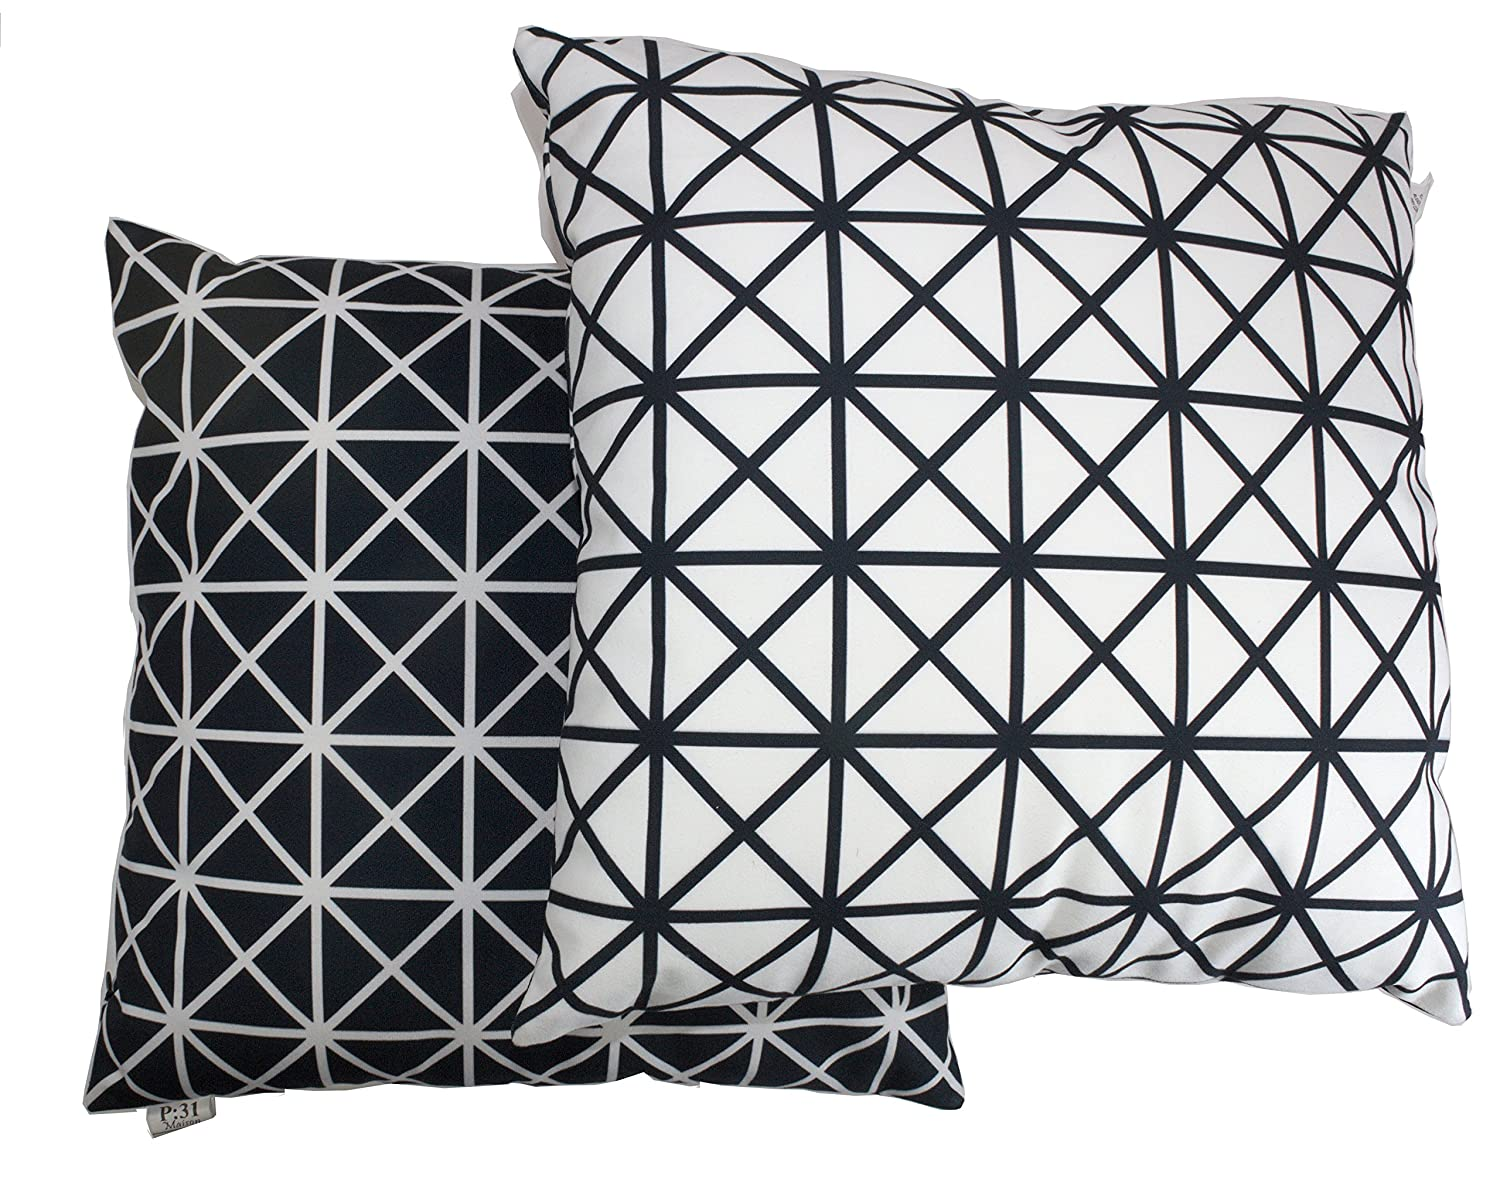 Pure Black and White Cushion Cover, Throw Pillow Cover, For 18 Inch Square Pillows. Geometric Design. Pattern On Both Sides. Soft Material. Set Of 2. P31 Maison